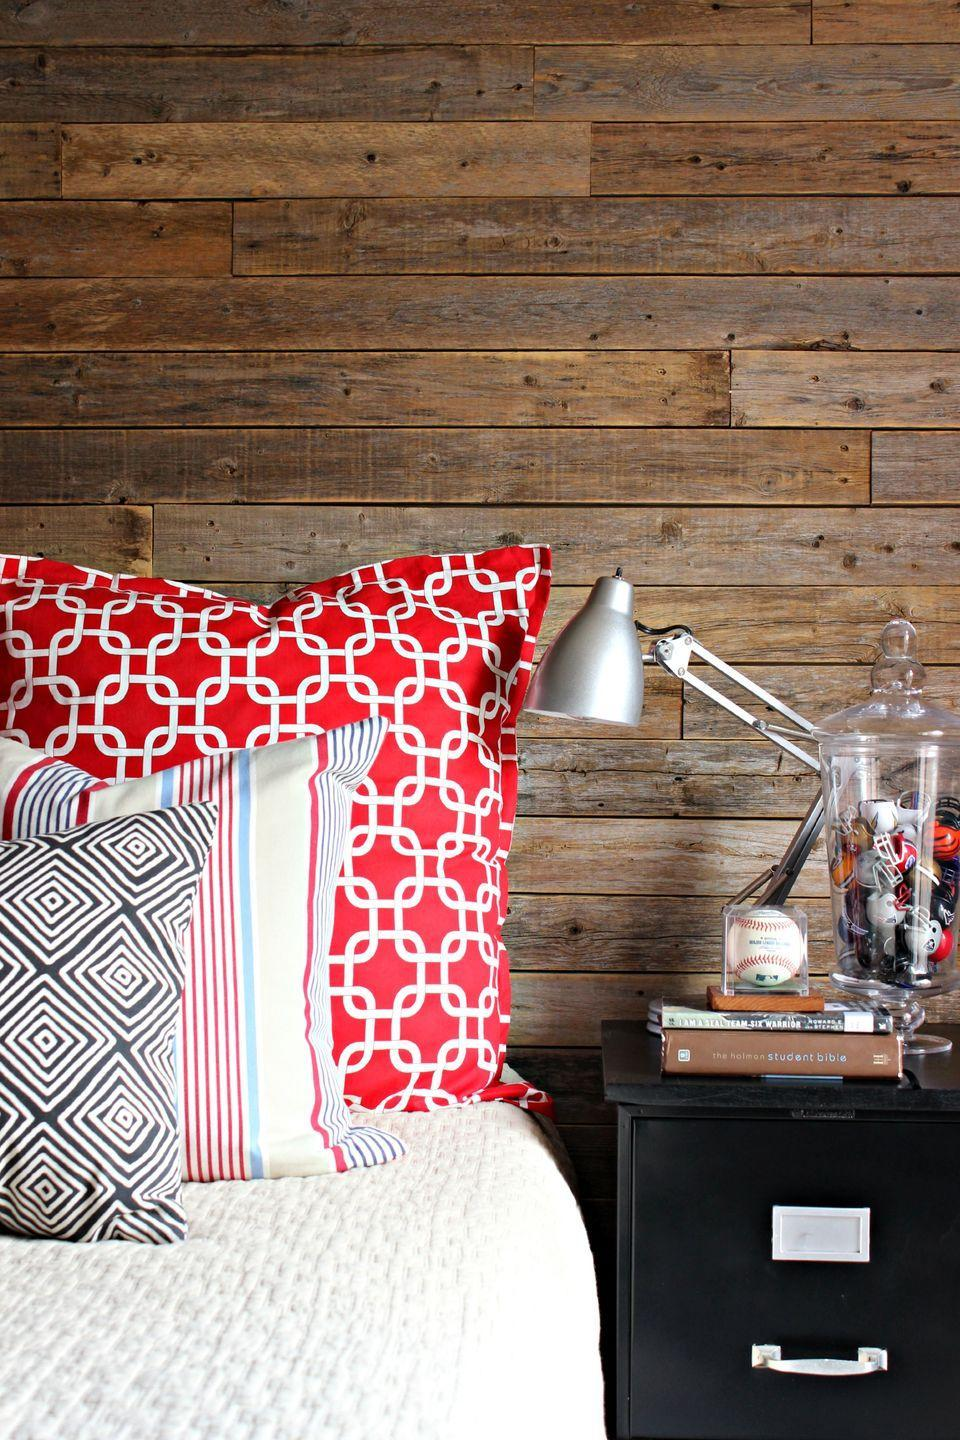 "<p>Skip the pros and DIY your own plank wall like in <a href=""https://www.goodhousekeeping.com/home/decorating-ideas/g1033/dimples-and-tangles-home/"" rel=""nofollow noopener"" target=""_blank"" data-ylk=""slk:this bedroom"" class=""link rapid-noclick-resp"">this bedroom</a>. Paired with bold linens, the rustic wood feels fresh, not quaint. </p><p><a href=""https://www.goodhousekeeping.com/home/decorating-ideas/a22994659/cheap-throw-pillows/"" rel=""nofollow noopener"" target=""_blank"" data-ylk=""slk:RELATED: Just Try to Resist Buying One of These Cute Throw Pillows for Under $20"" class=""link rapid-noclick-resp""><strong>RELATED:</strong> Just Try to Resist Buying One of These Cute Throw Pillows for Under $20</a></p>"